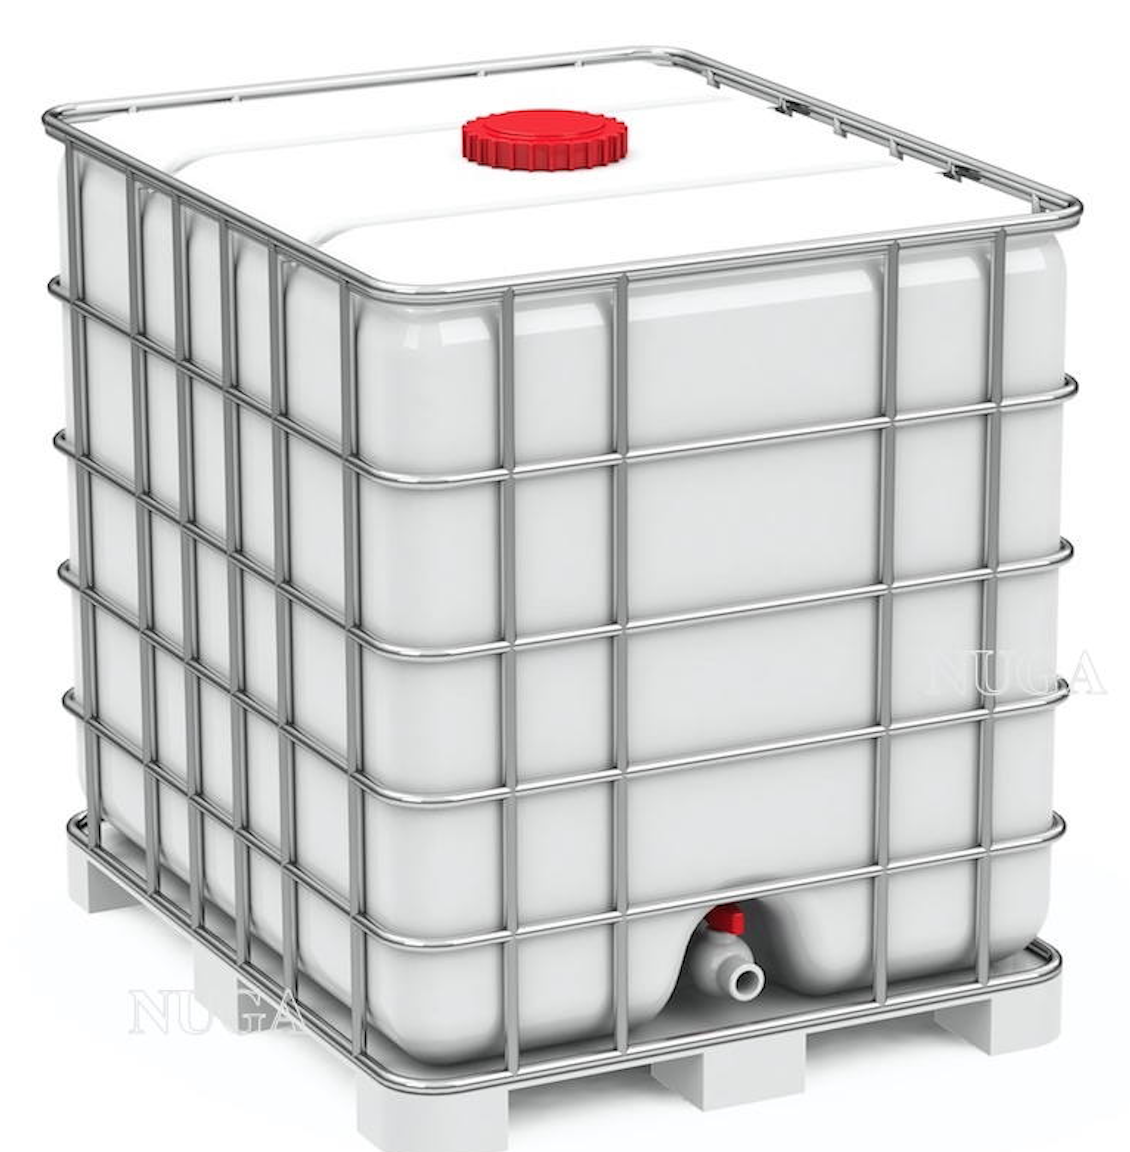 Food Grade Alcohol Spirits - Bulk - 1000 L IBC Container